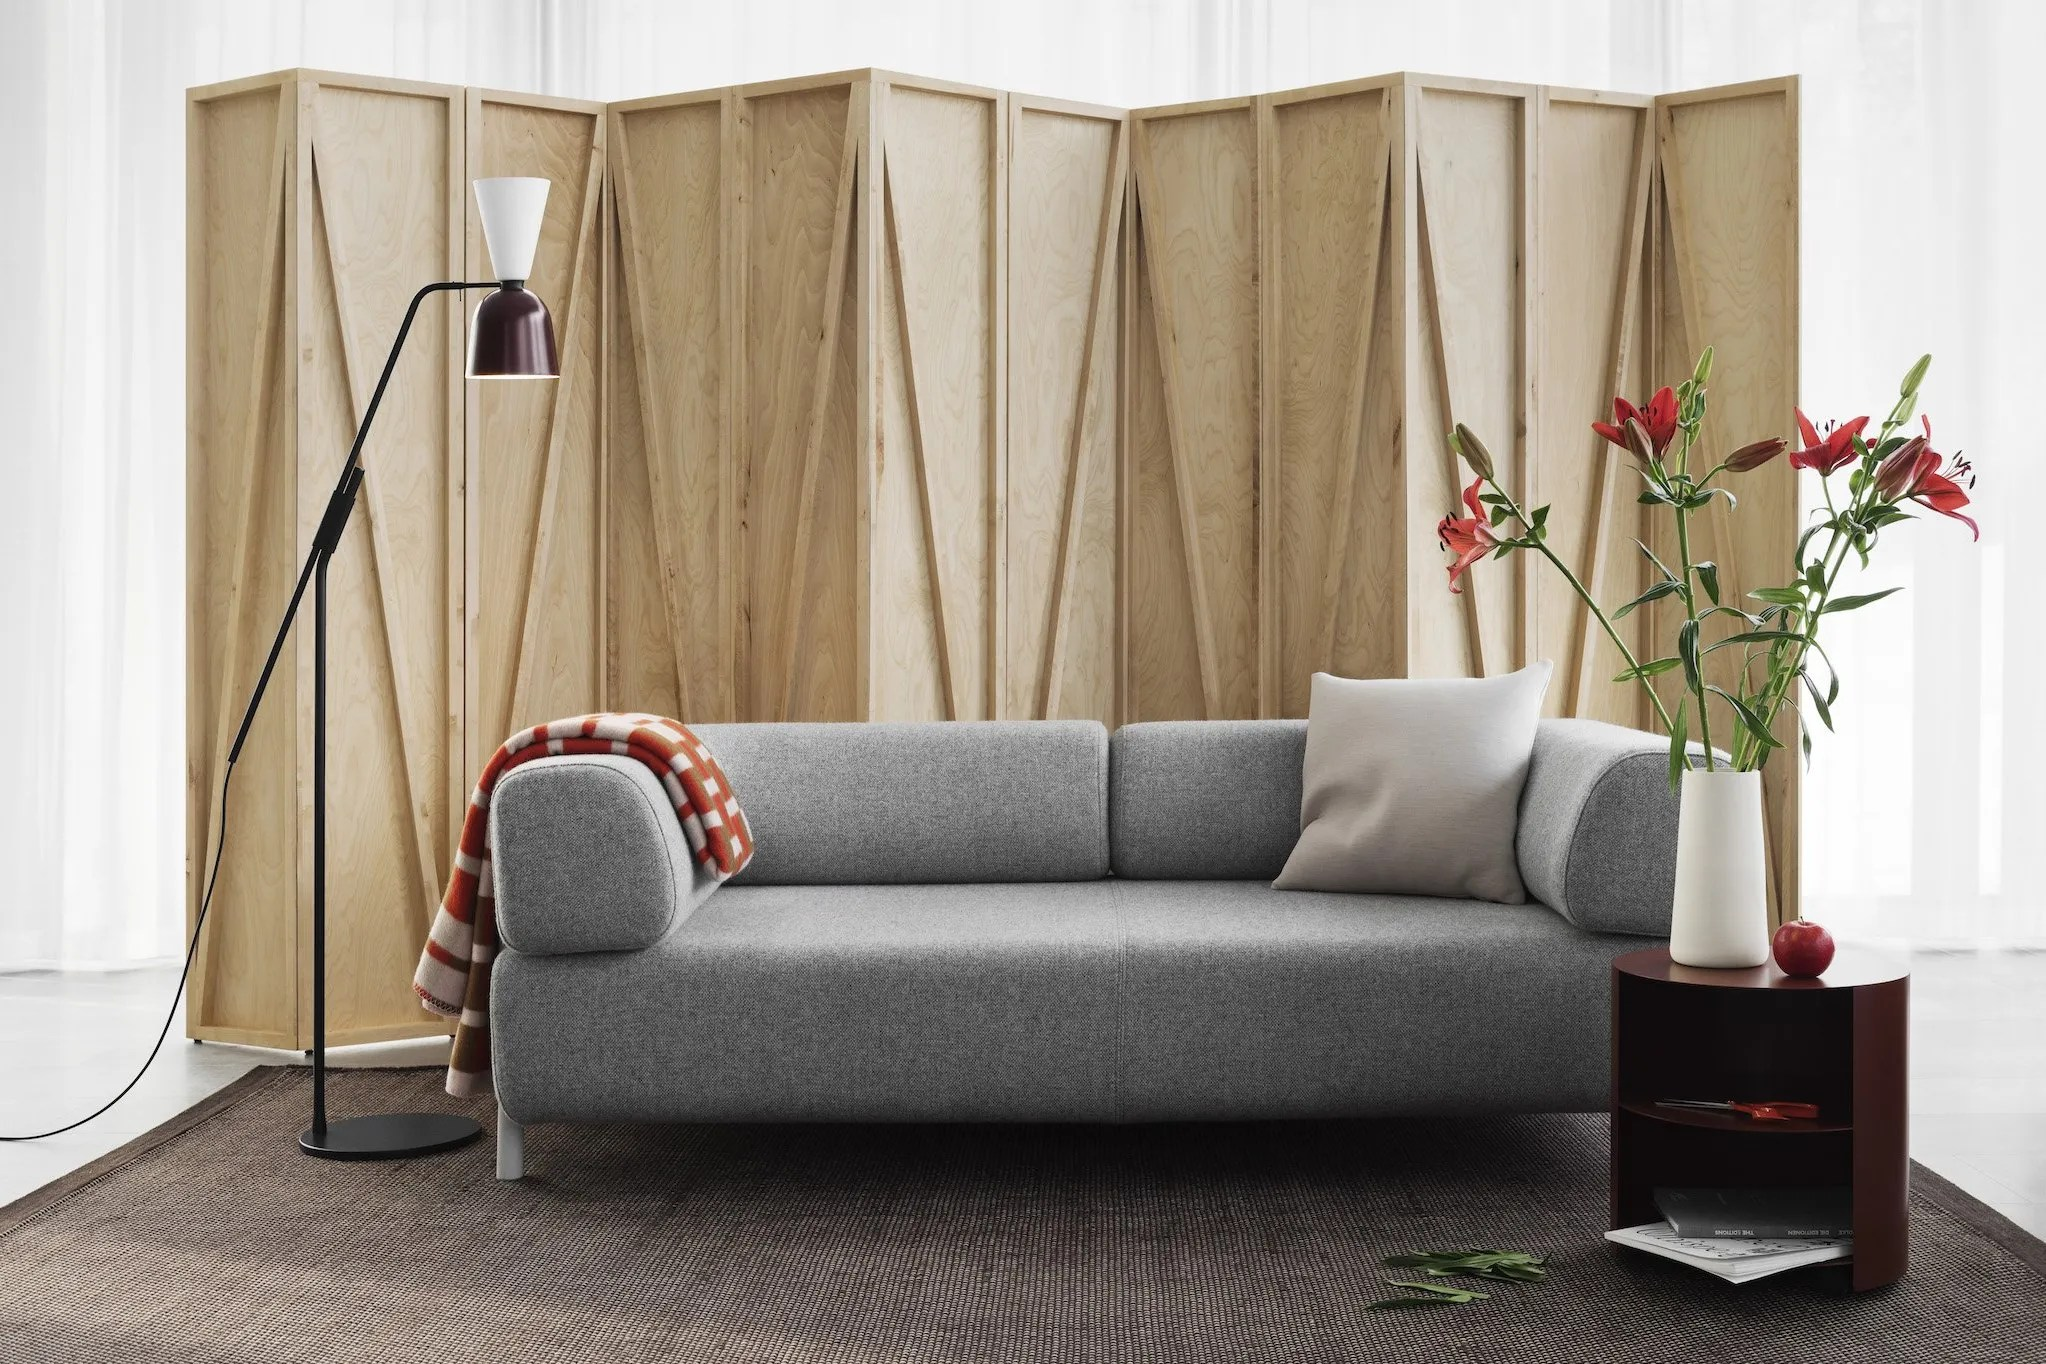 Klassische Sofas You Can Assemble Where To Buy Flat Pack Furniture Architectural Digest